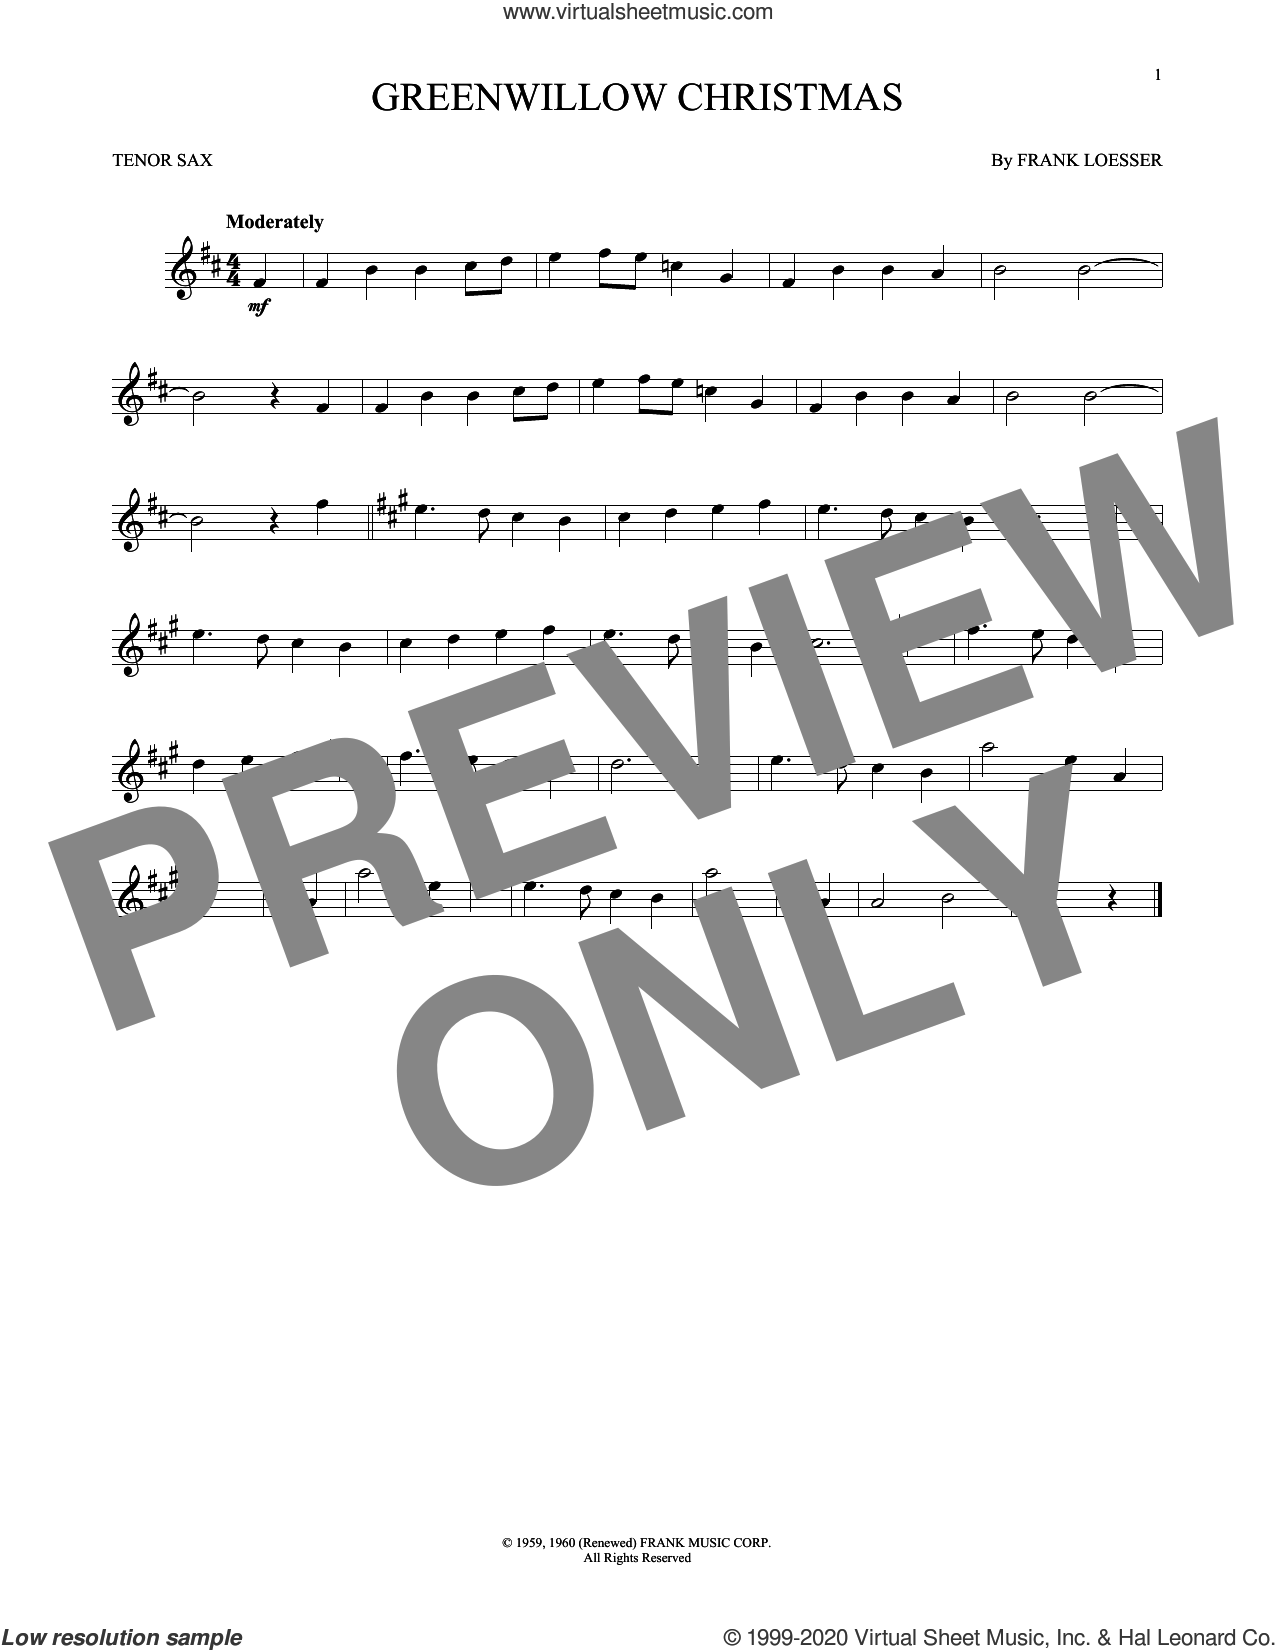 Greenwillow Christmas sheet music for tenor saxophone solo by Frank Loesser, intermediate skill level